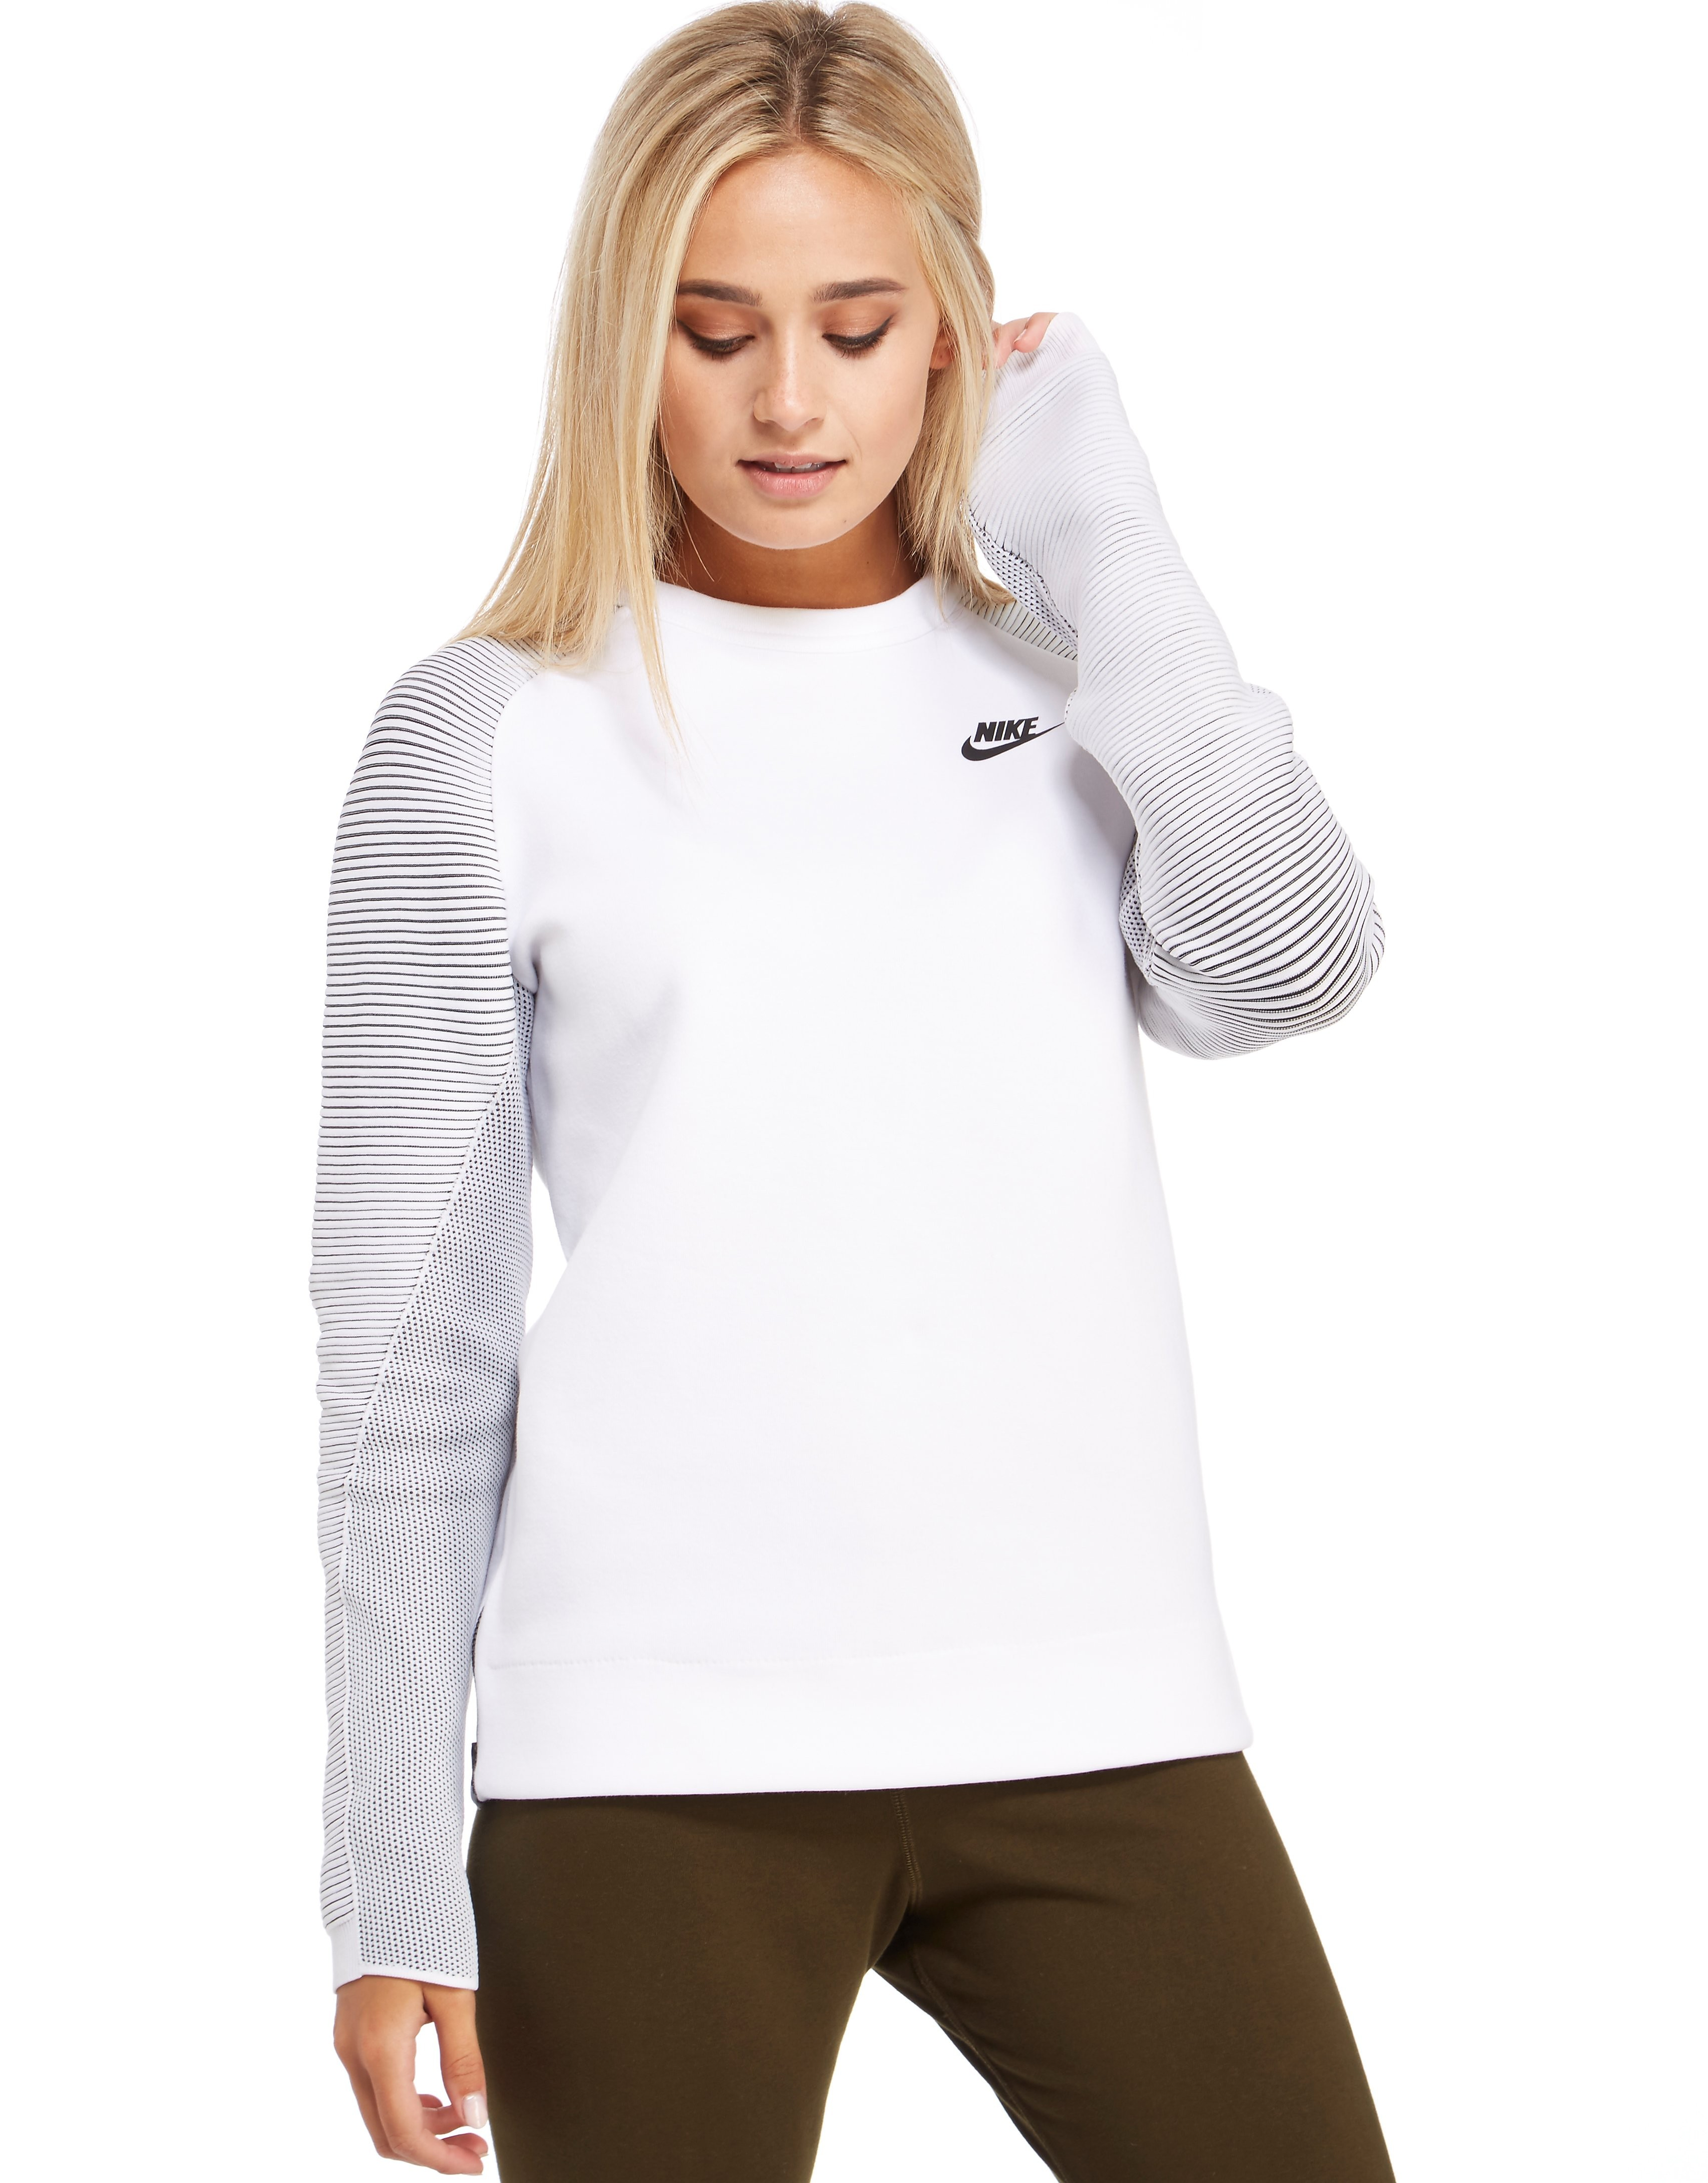 Nike Reveal Crew Sweatshirt